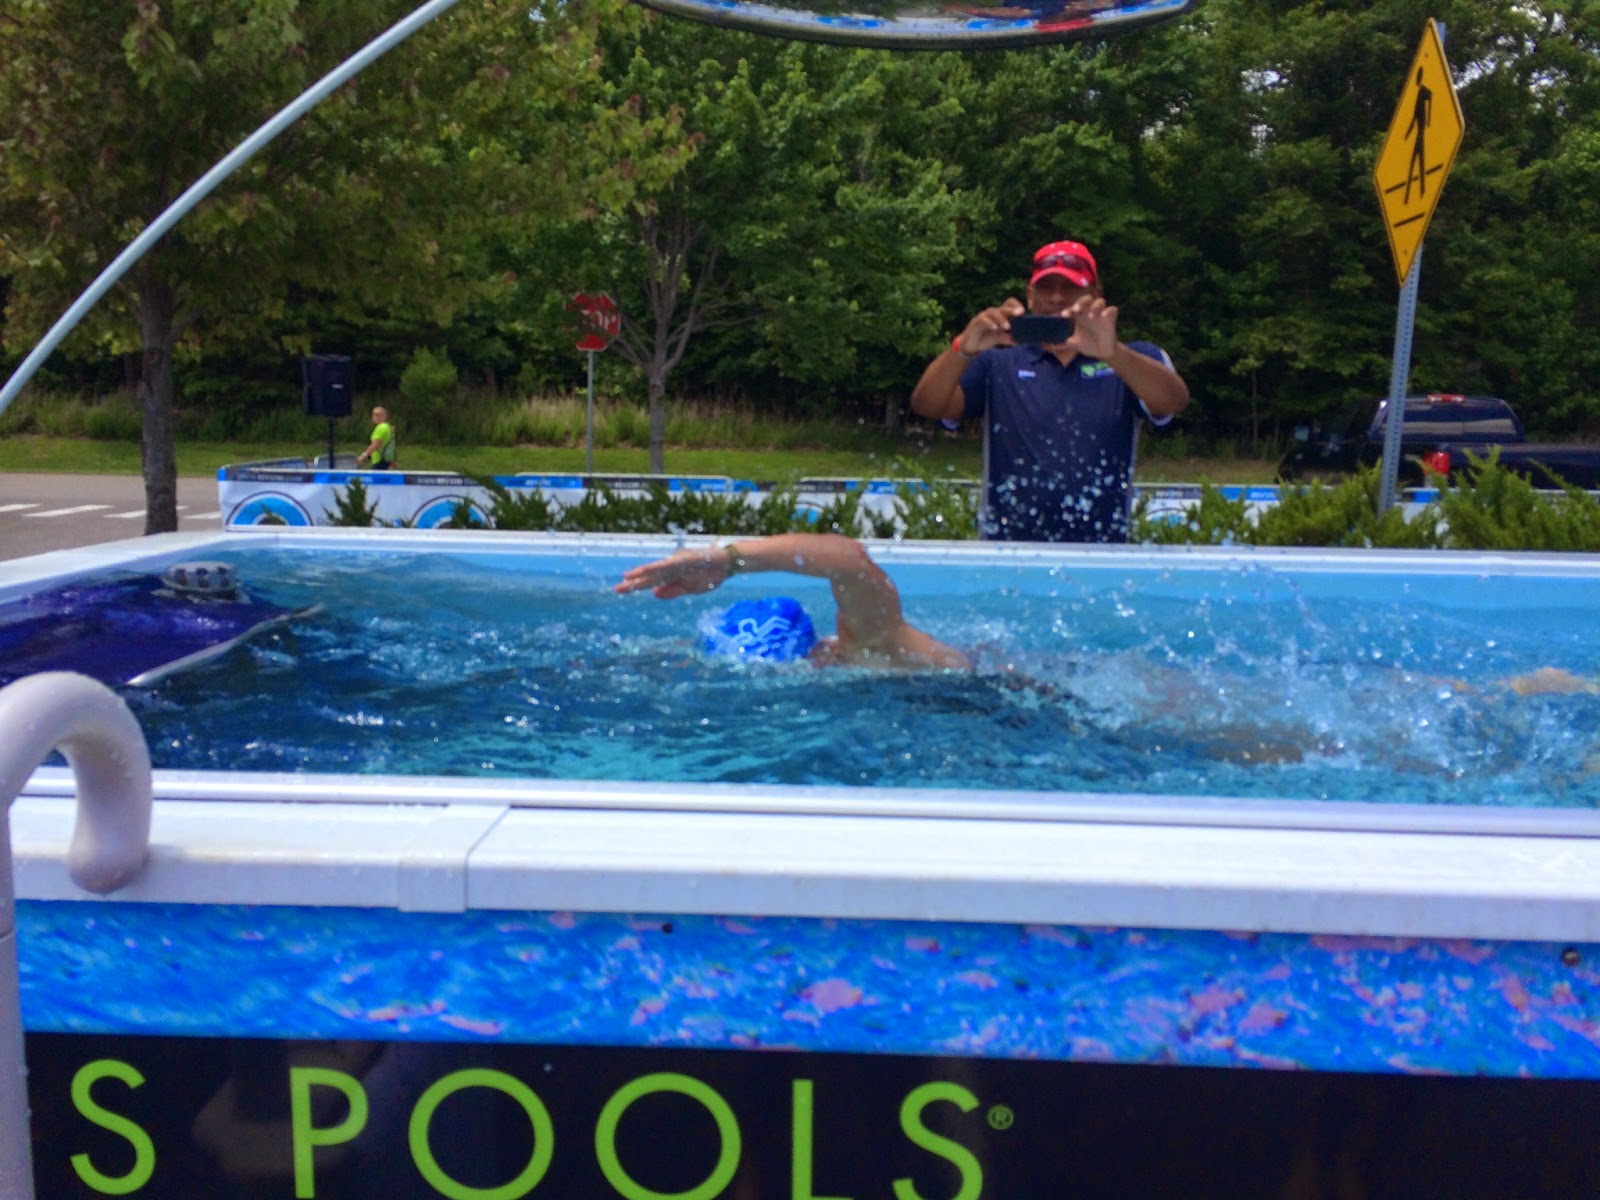 a triathlete swims freestyle in the Performance Endless Pool at the Rev3 Triathlon in Williamsburg, Virginia